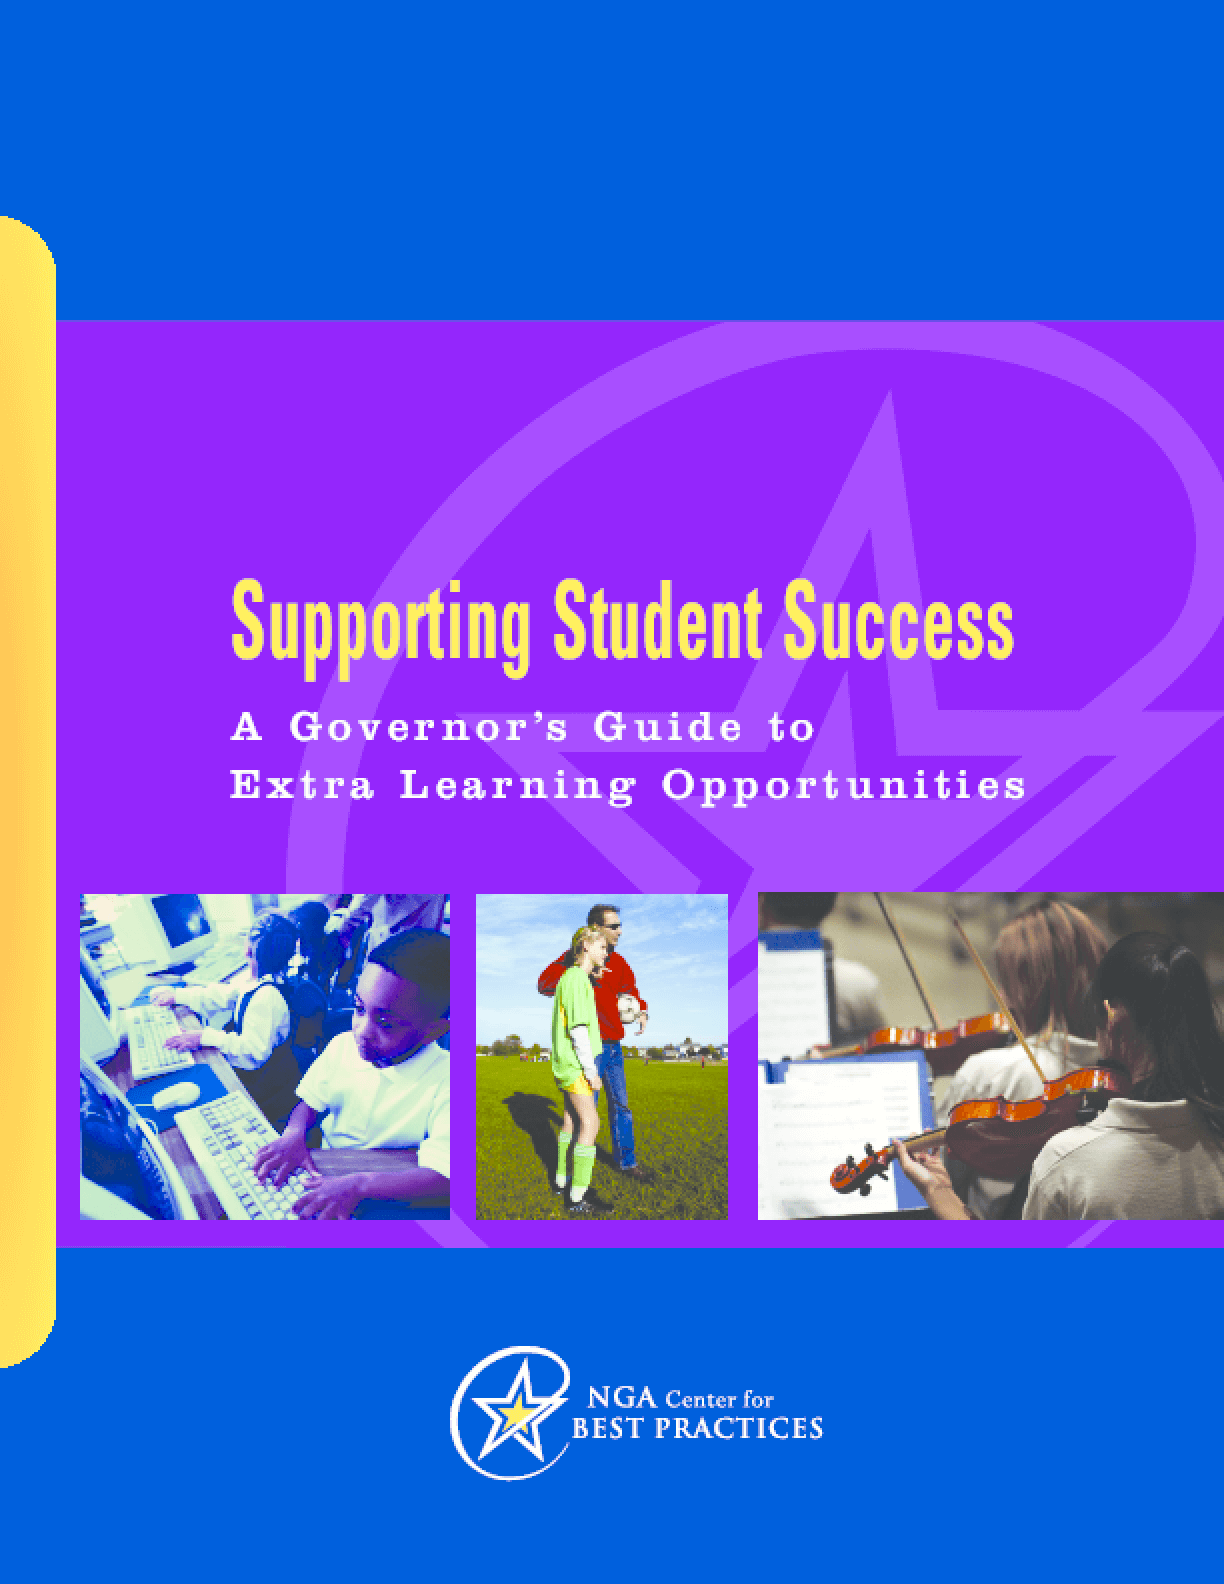 Supporting Student Success: A Governor's Guide to Extra Learning Opportunities